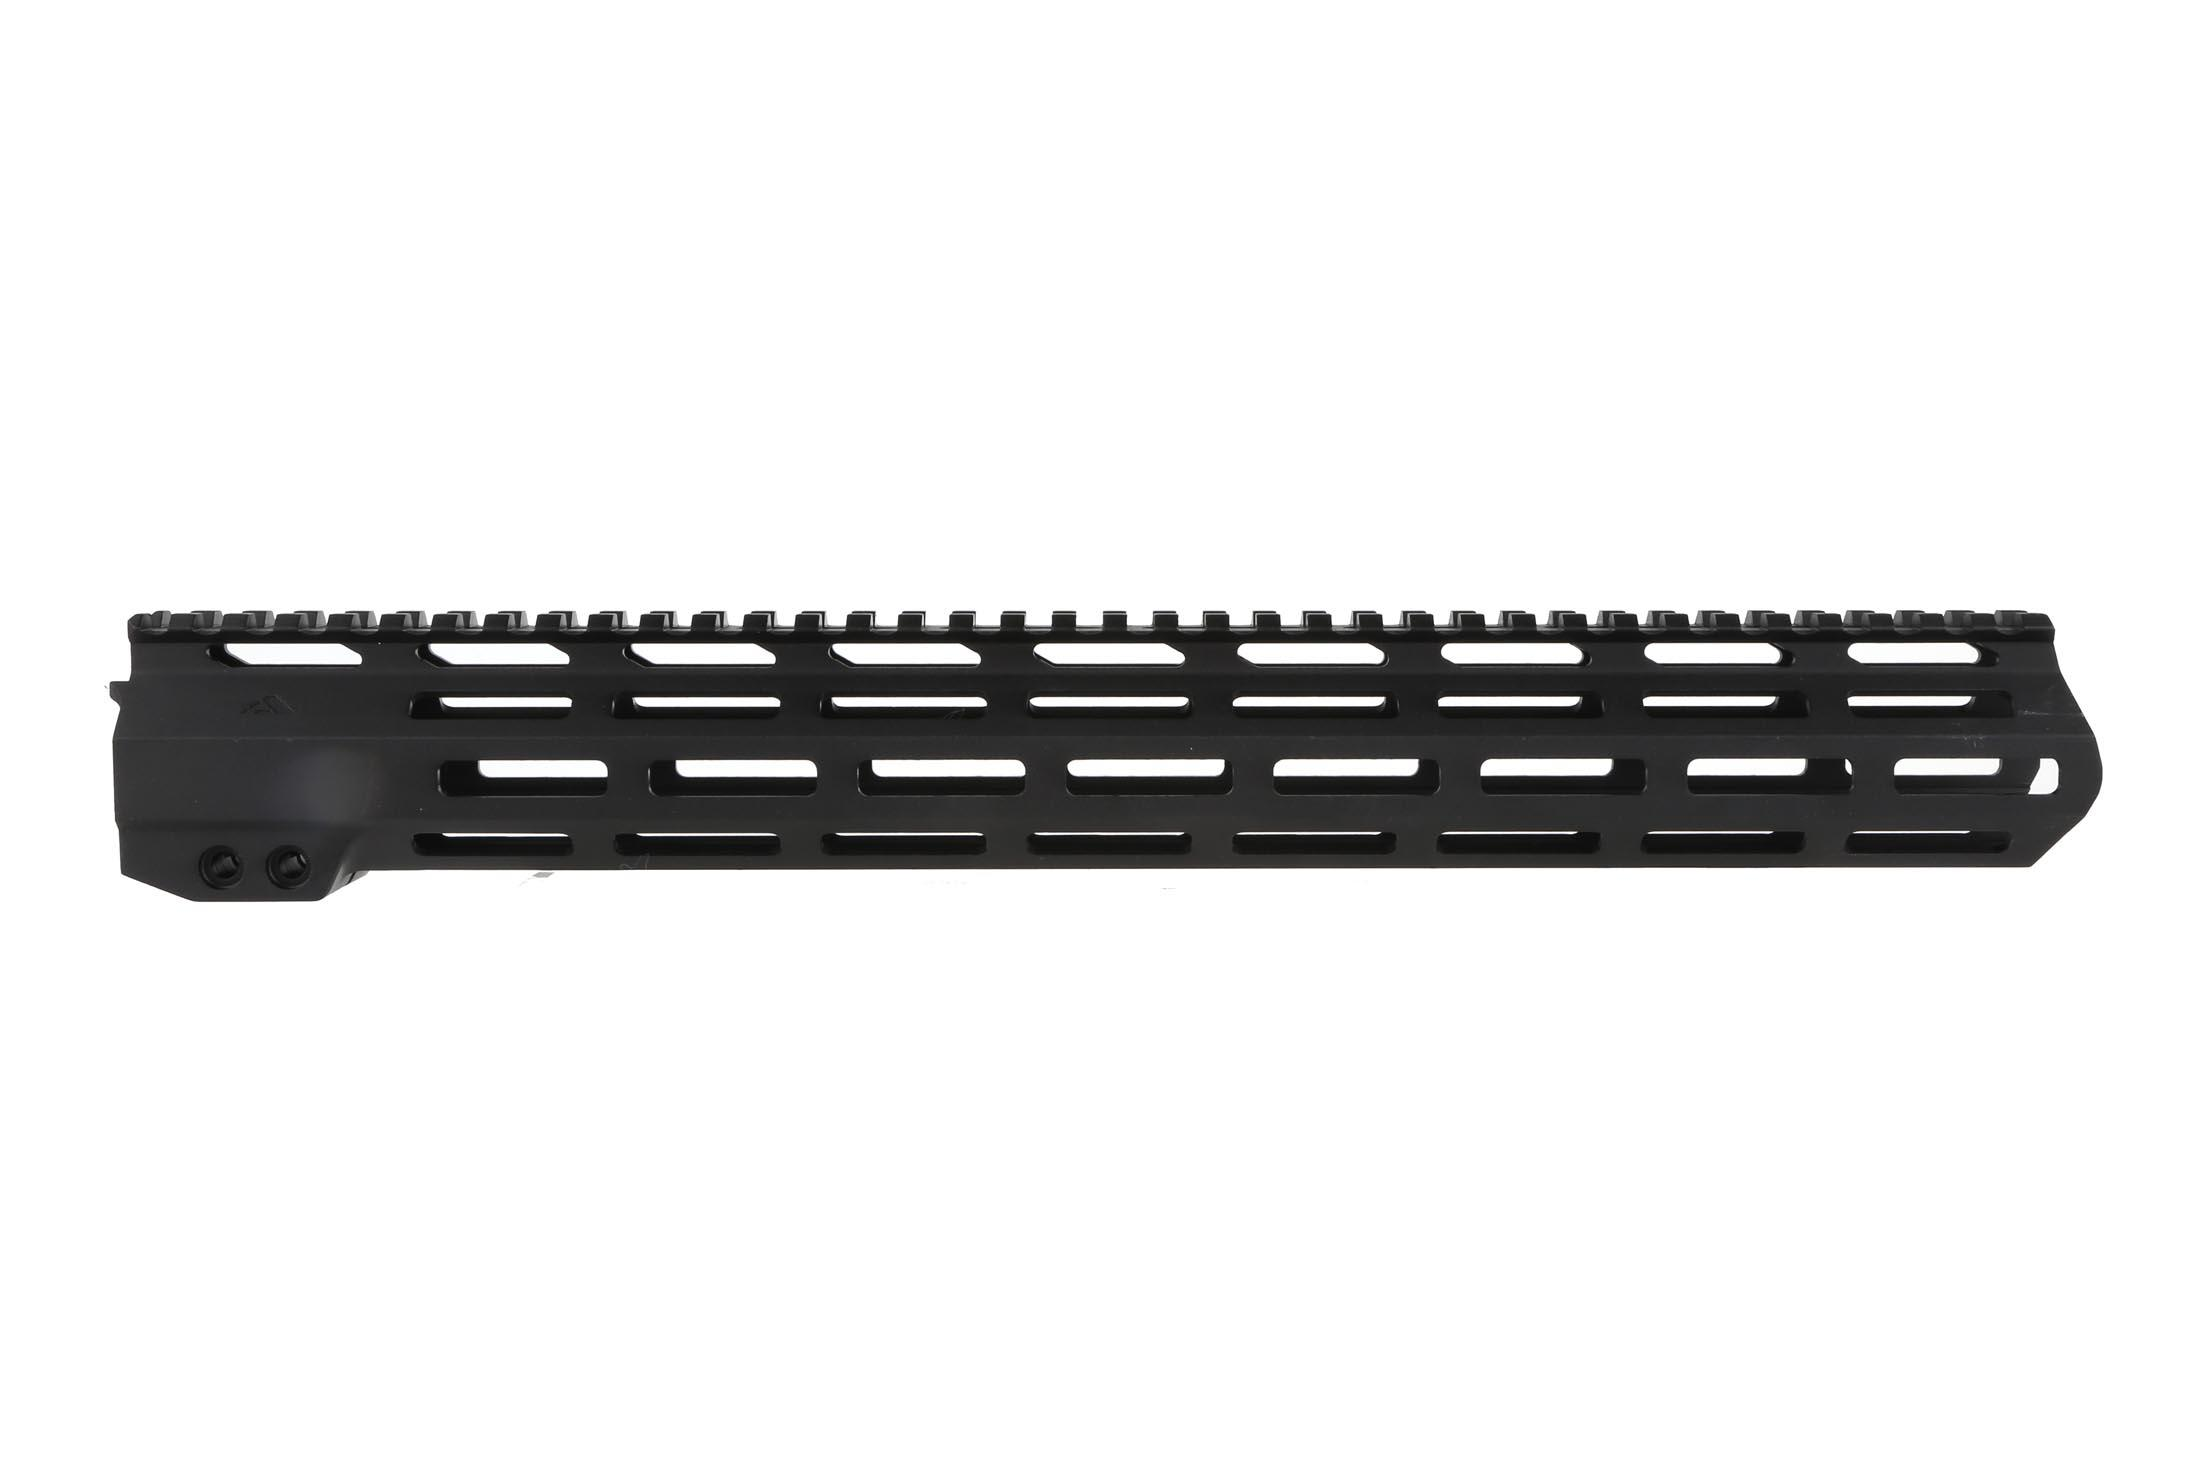 The Aim Sports AR15 free float handguard comes with a barrel nut for installation